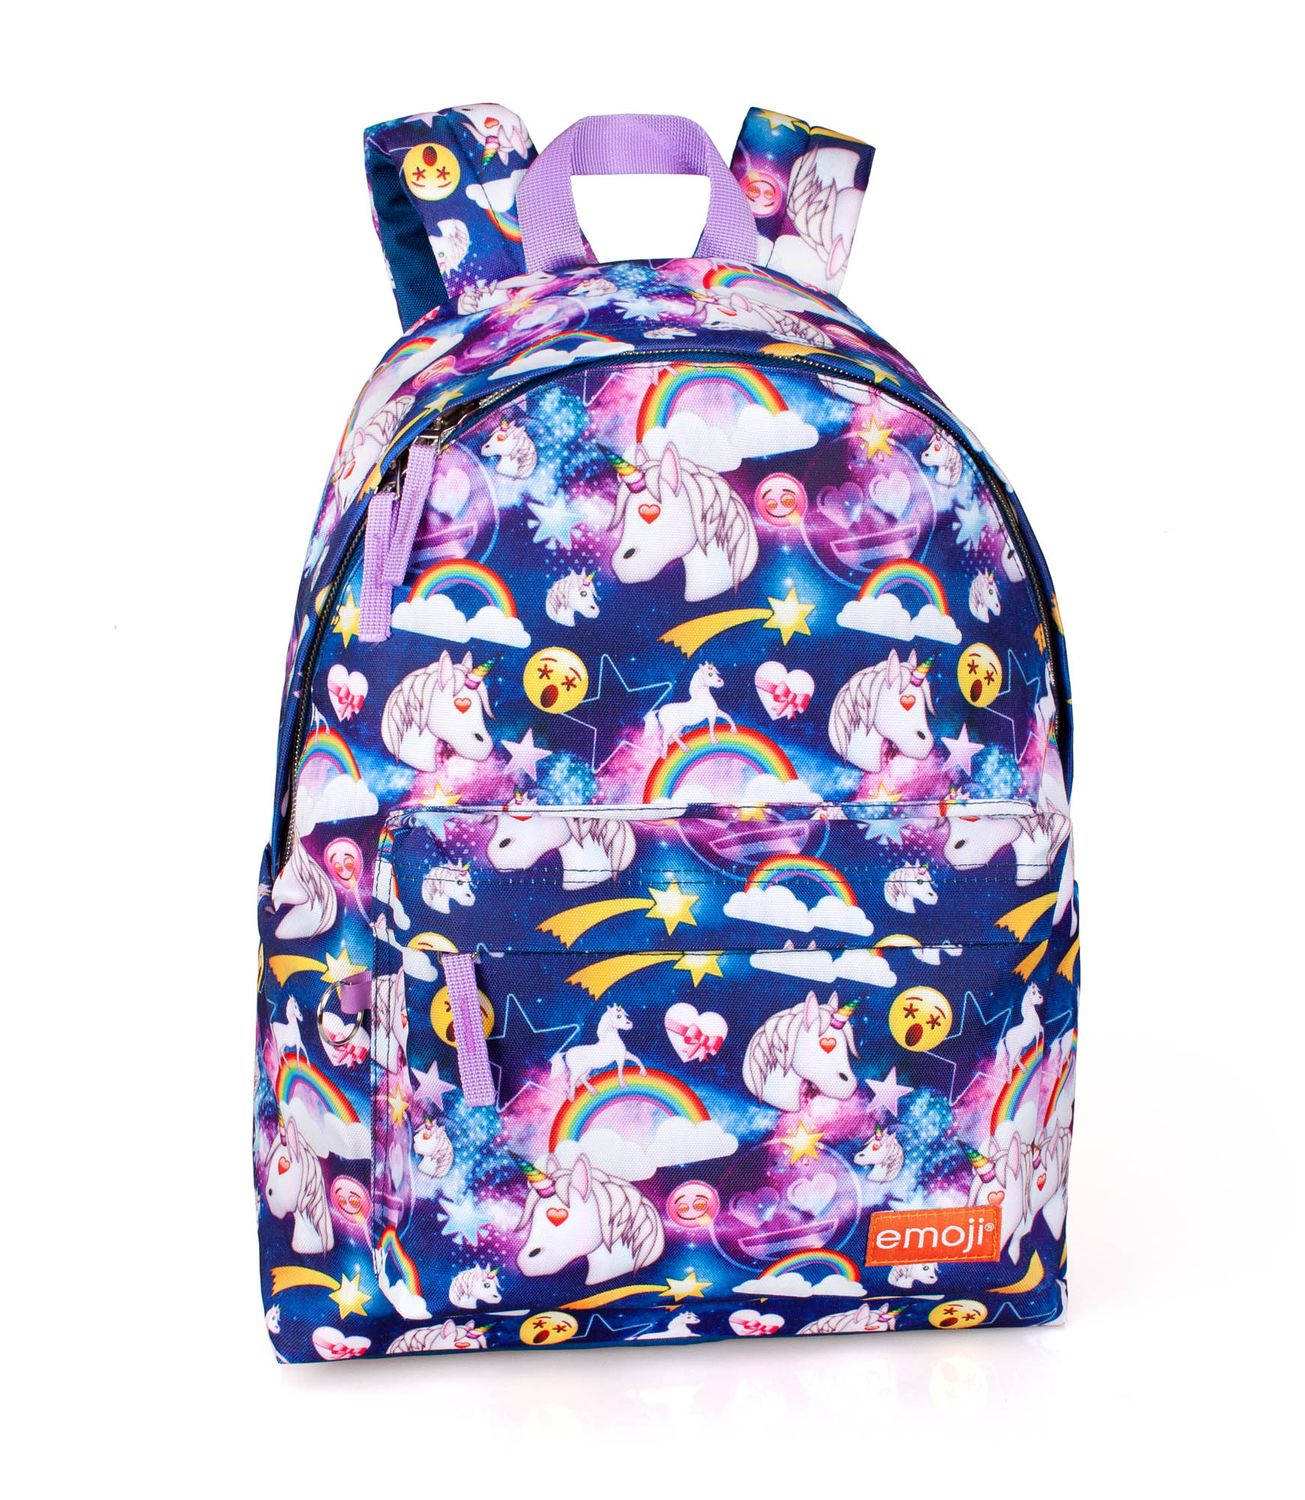 Backpack Rucksack EMOJI Official UNICORN – image 1